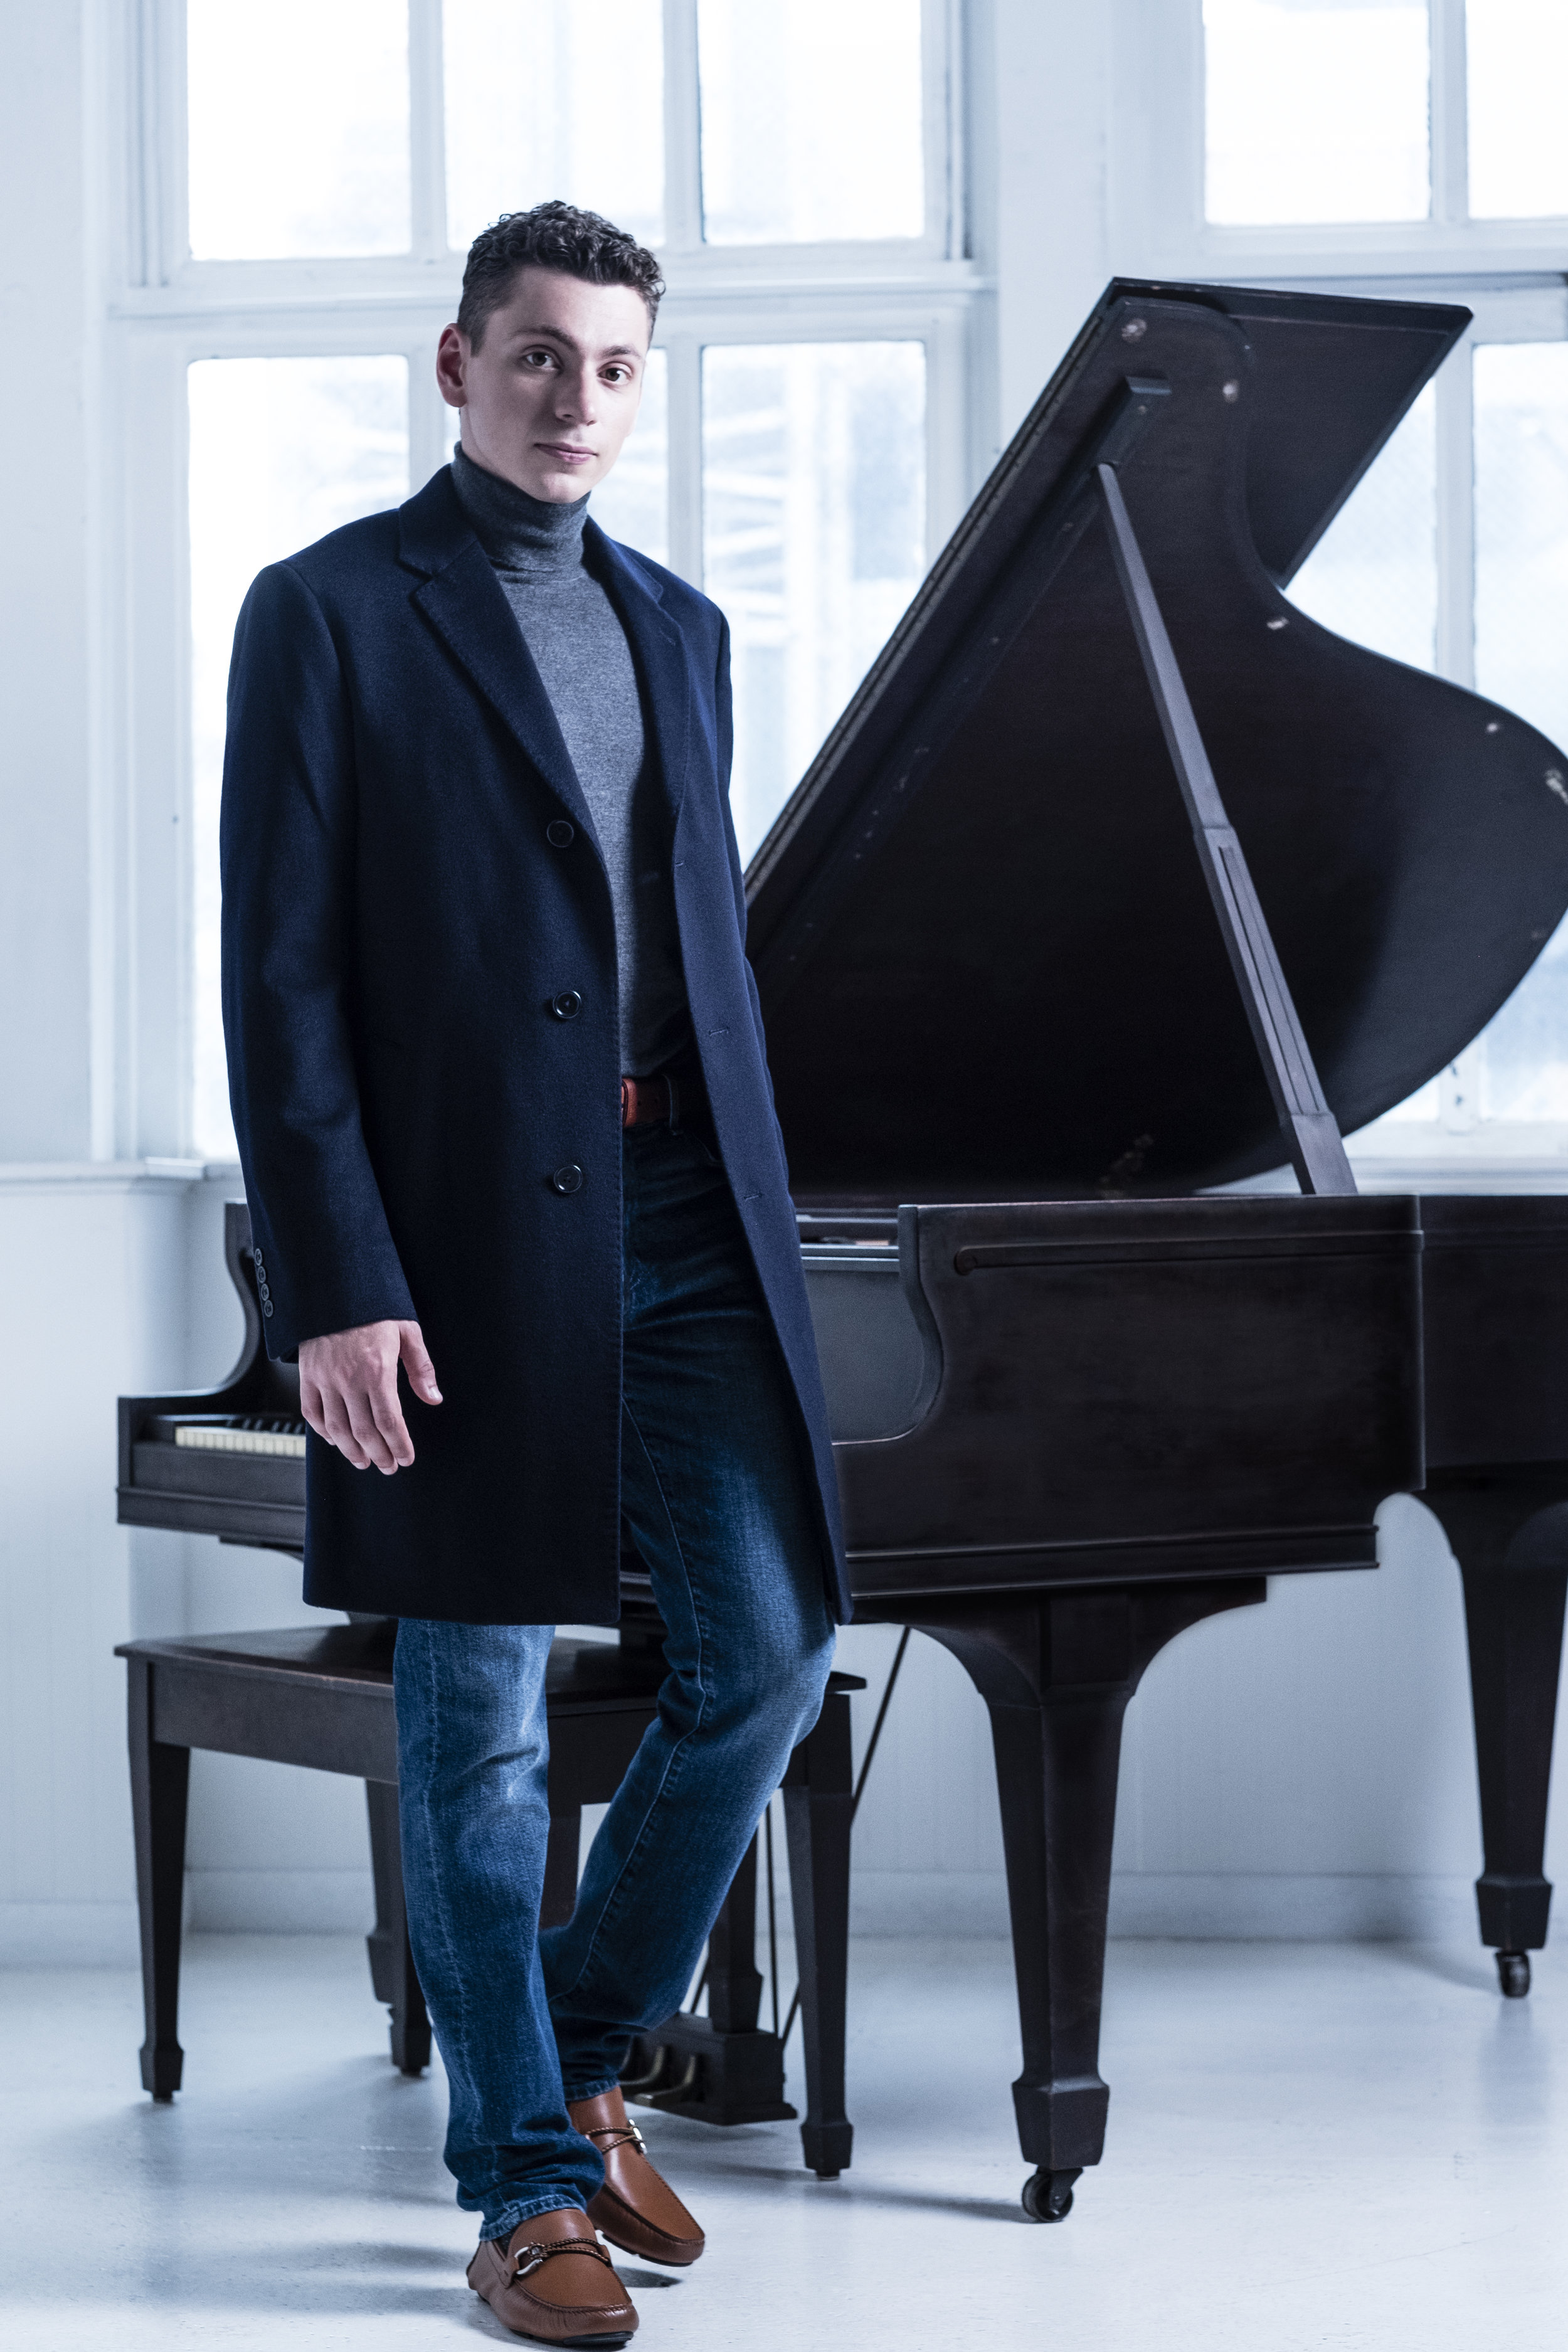 Dominic Cheli was the First Prize winner of the 2017 Concert Artists Guild Competition. A Naxos recording artist, he released his first CD of the music of Clementi in 2017, and his following album of the music of Schubert and Liszt will be available soon. His rapidly advancing career included his debut in Walt Disney Hall performing Prokofiev's 3rd Piano concerto with Valery Gergiev, his Carnegie Hall recital debut, as well as appearances with numerous orchestras across the country. He has appeared at the Mostly Mozart, Ravinia, and Virginia Arts Festivals, working with conductors such as Valery Gergiev, Matt Aucoin, Markus Huber, Rossen Milanov, Barbara Schubert, Arthur Fagen, and many others. -